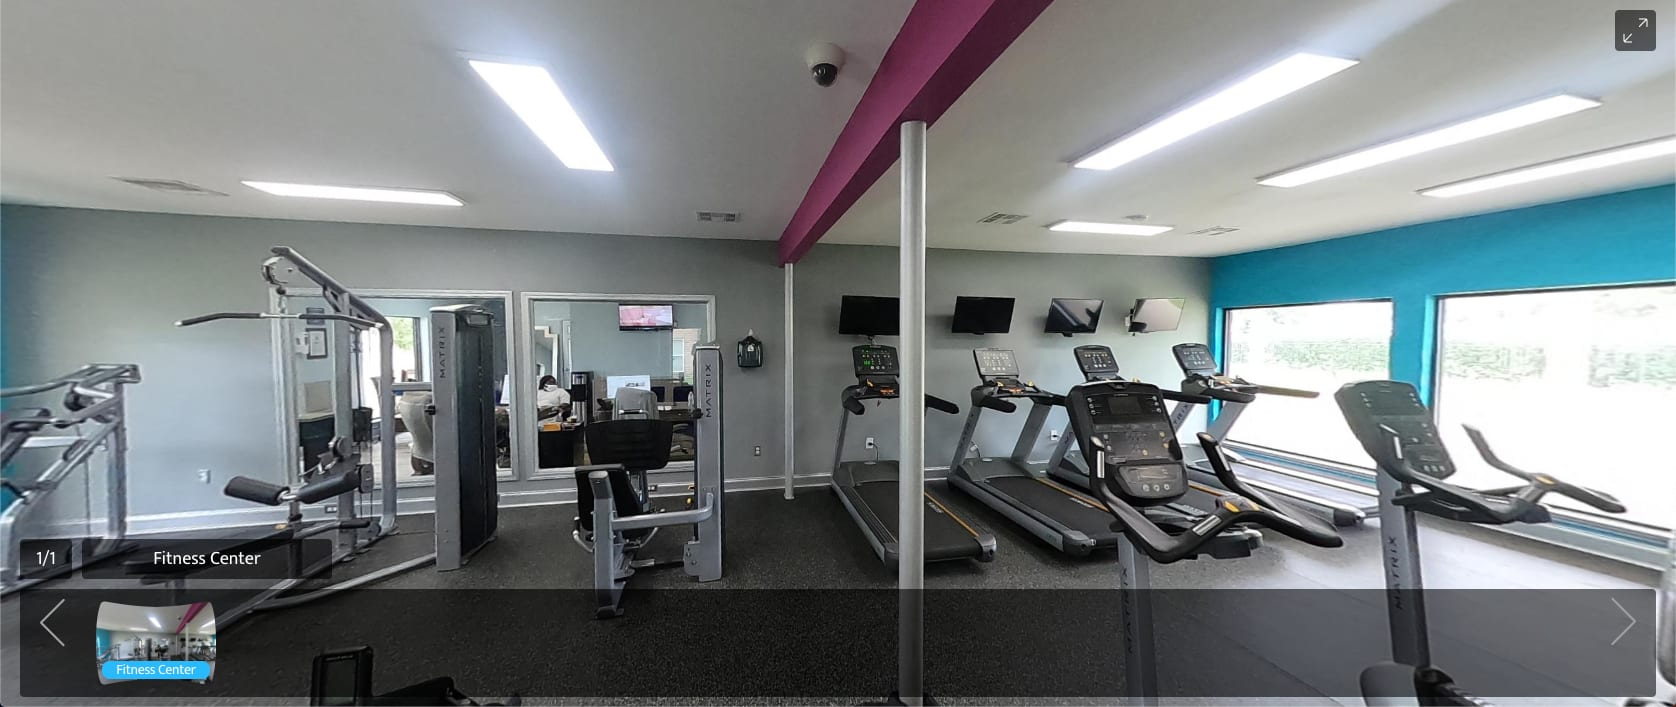 virtual tour of fitness center at The Mayfair Apartment Homes in New Orleans, Louisiana